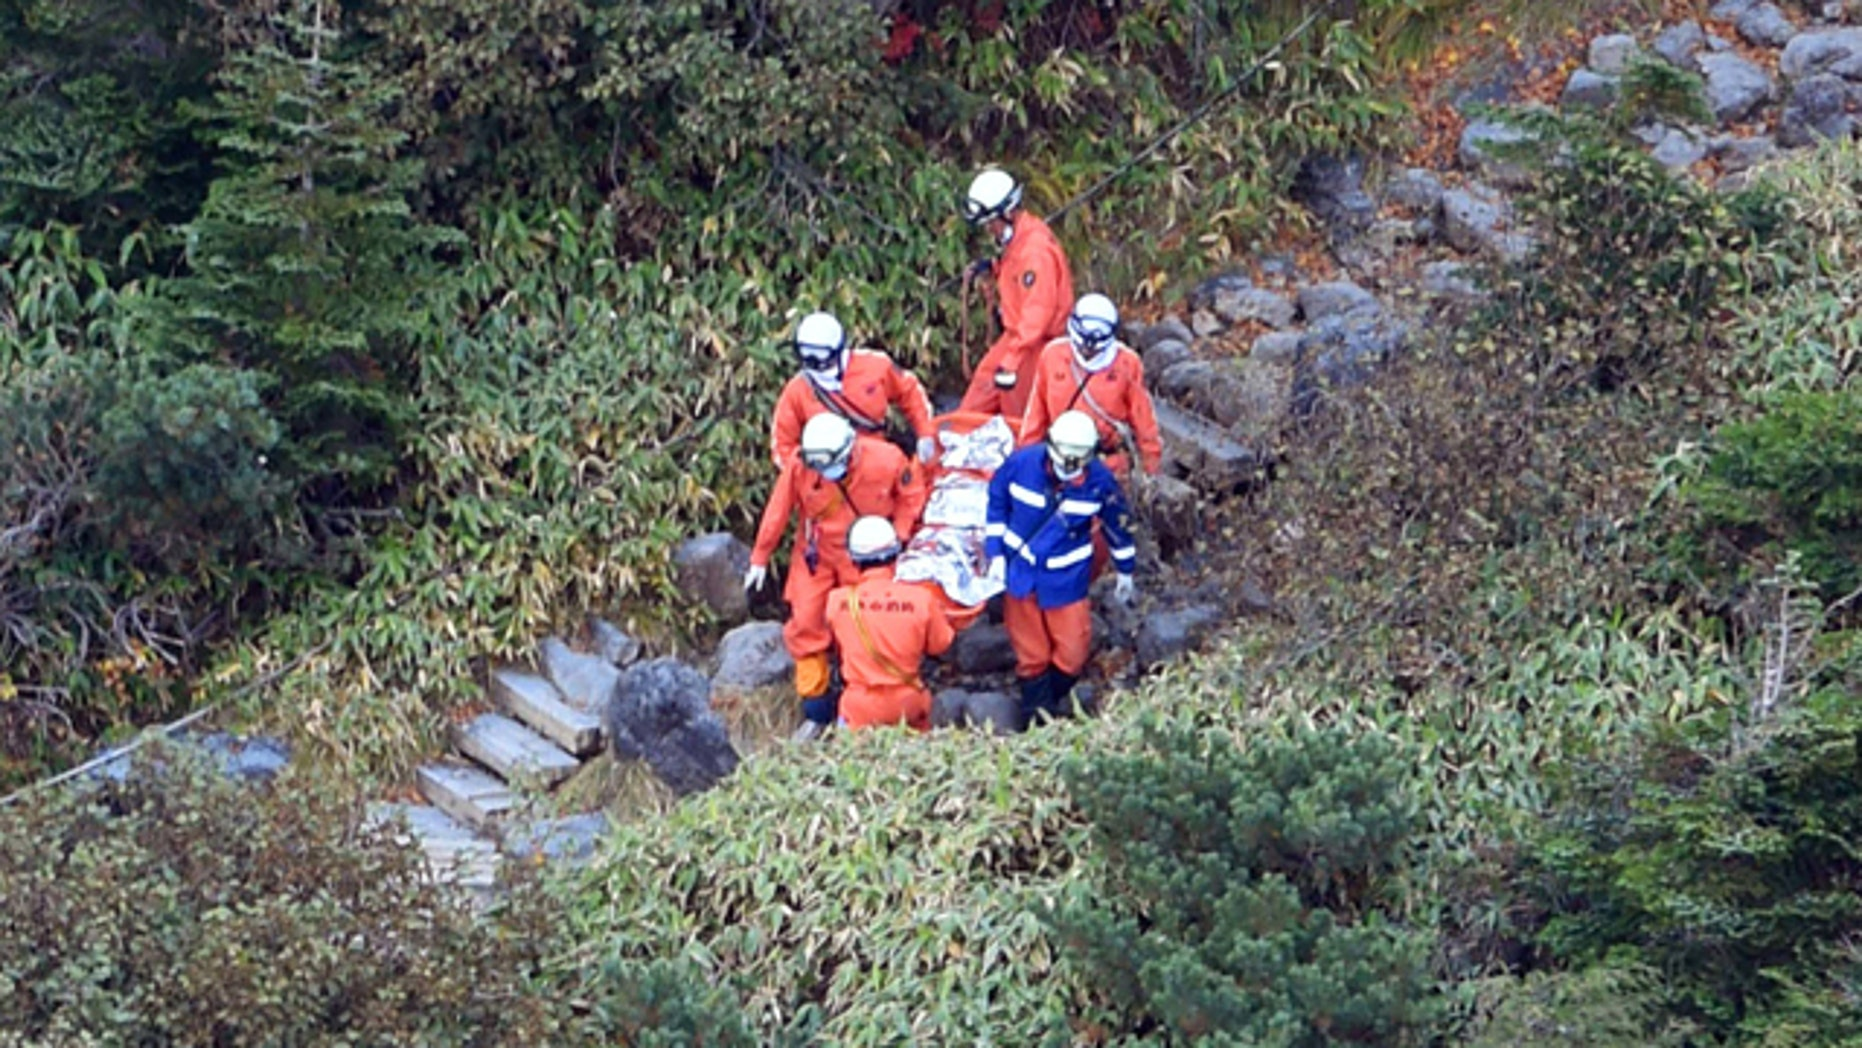 October 1, 2014: Rescuers carry a person found on Mount Ontake in central Japan. Search efforts for people missing since Saturday's surprise eruption resumed Wednesday morning. (AP Photo/Kyodo News)